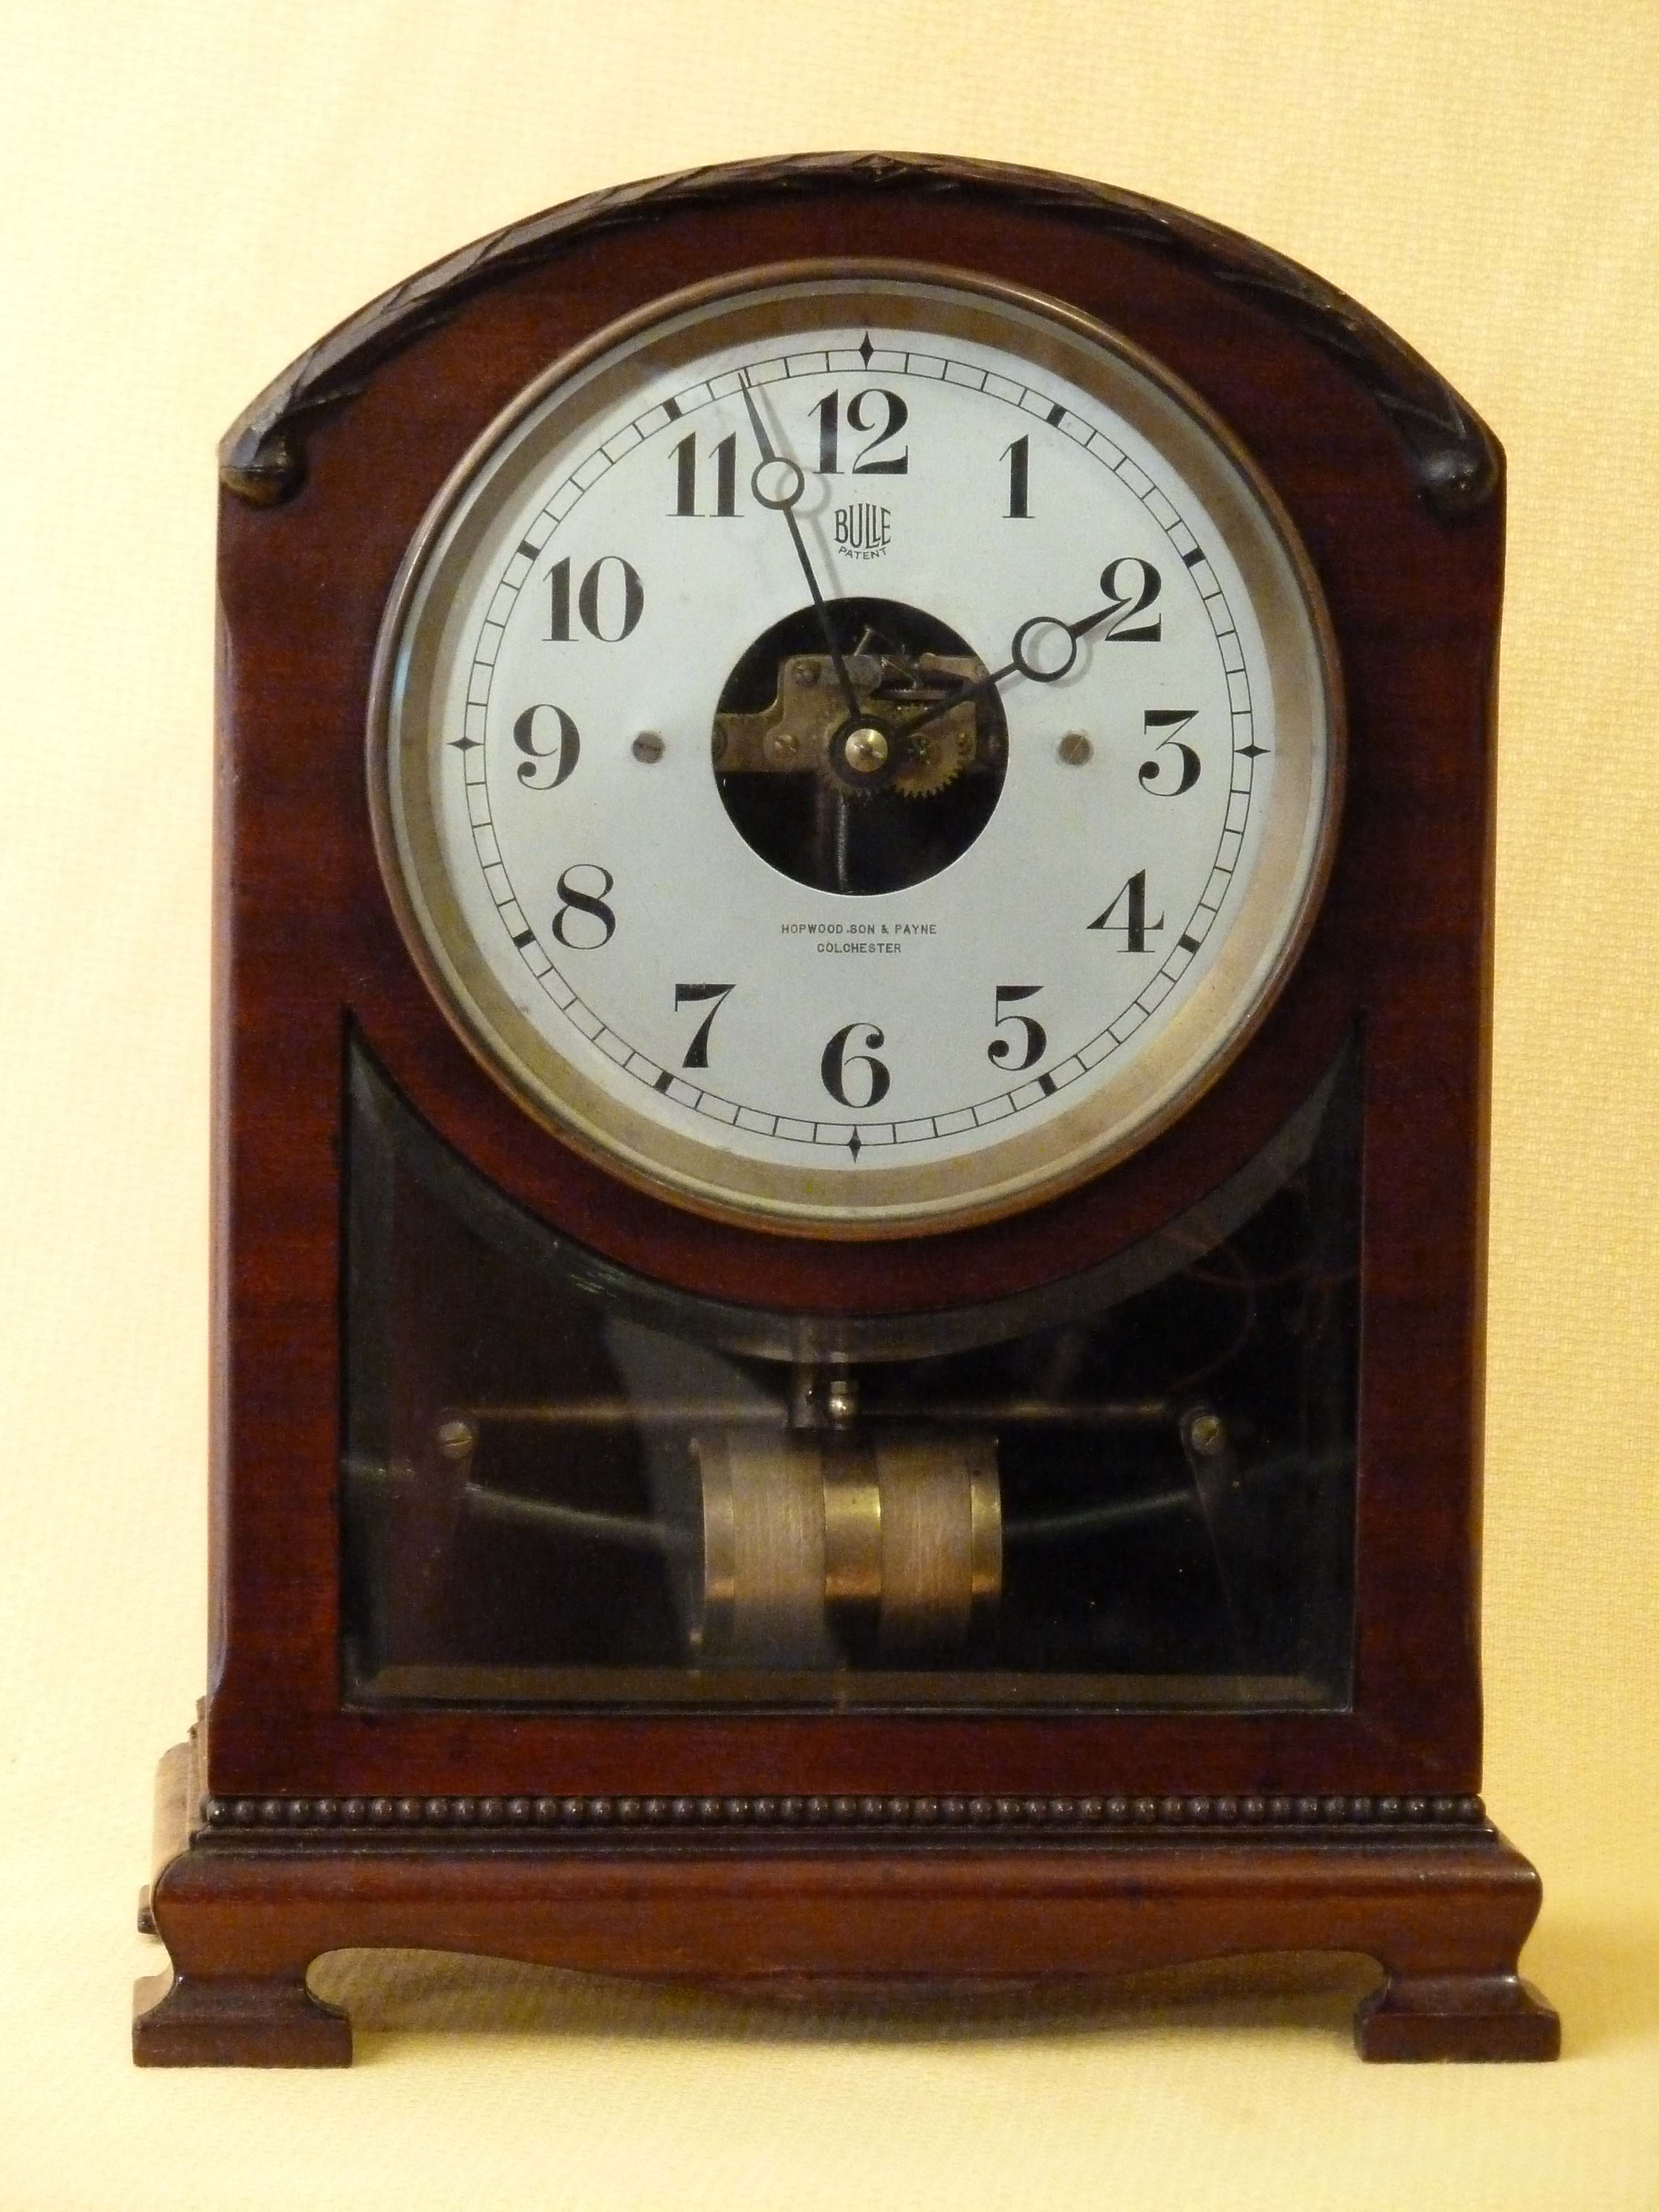 Antique Mantel Clocks >> Bulle clock | Art Deco & Art Nouveau Electric clock | Battery Clock